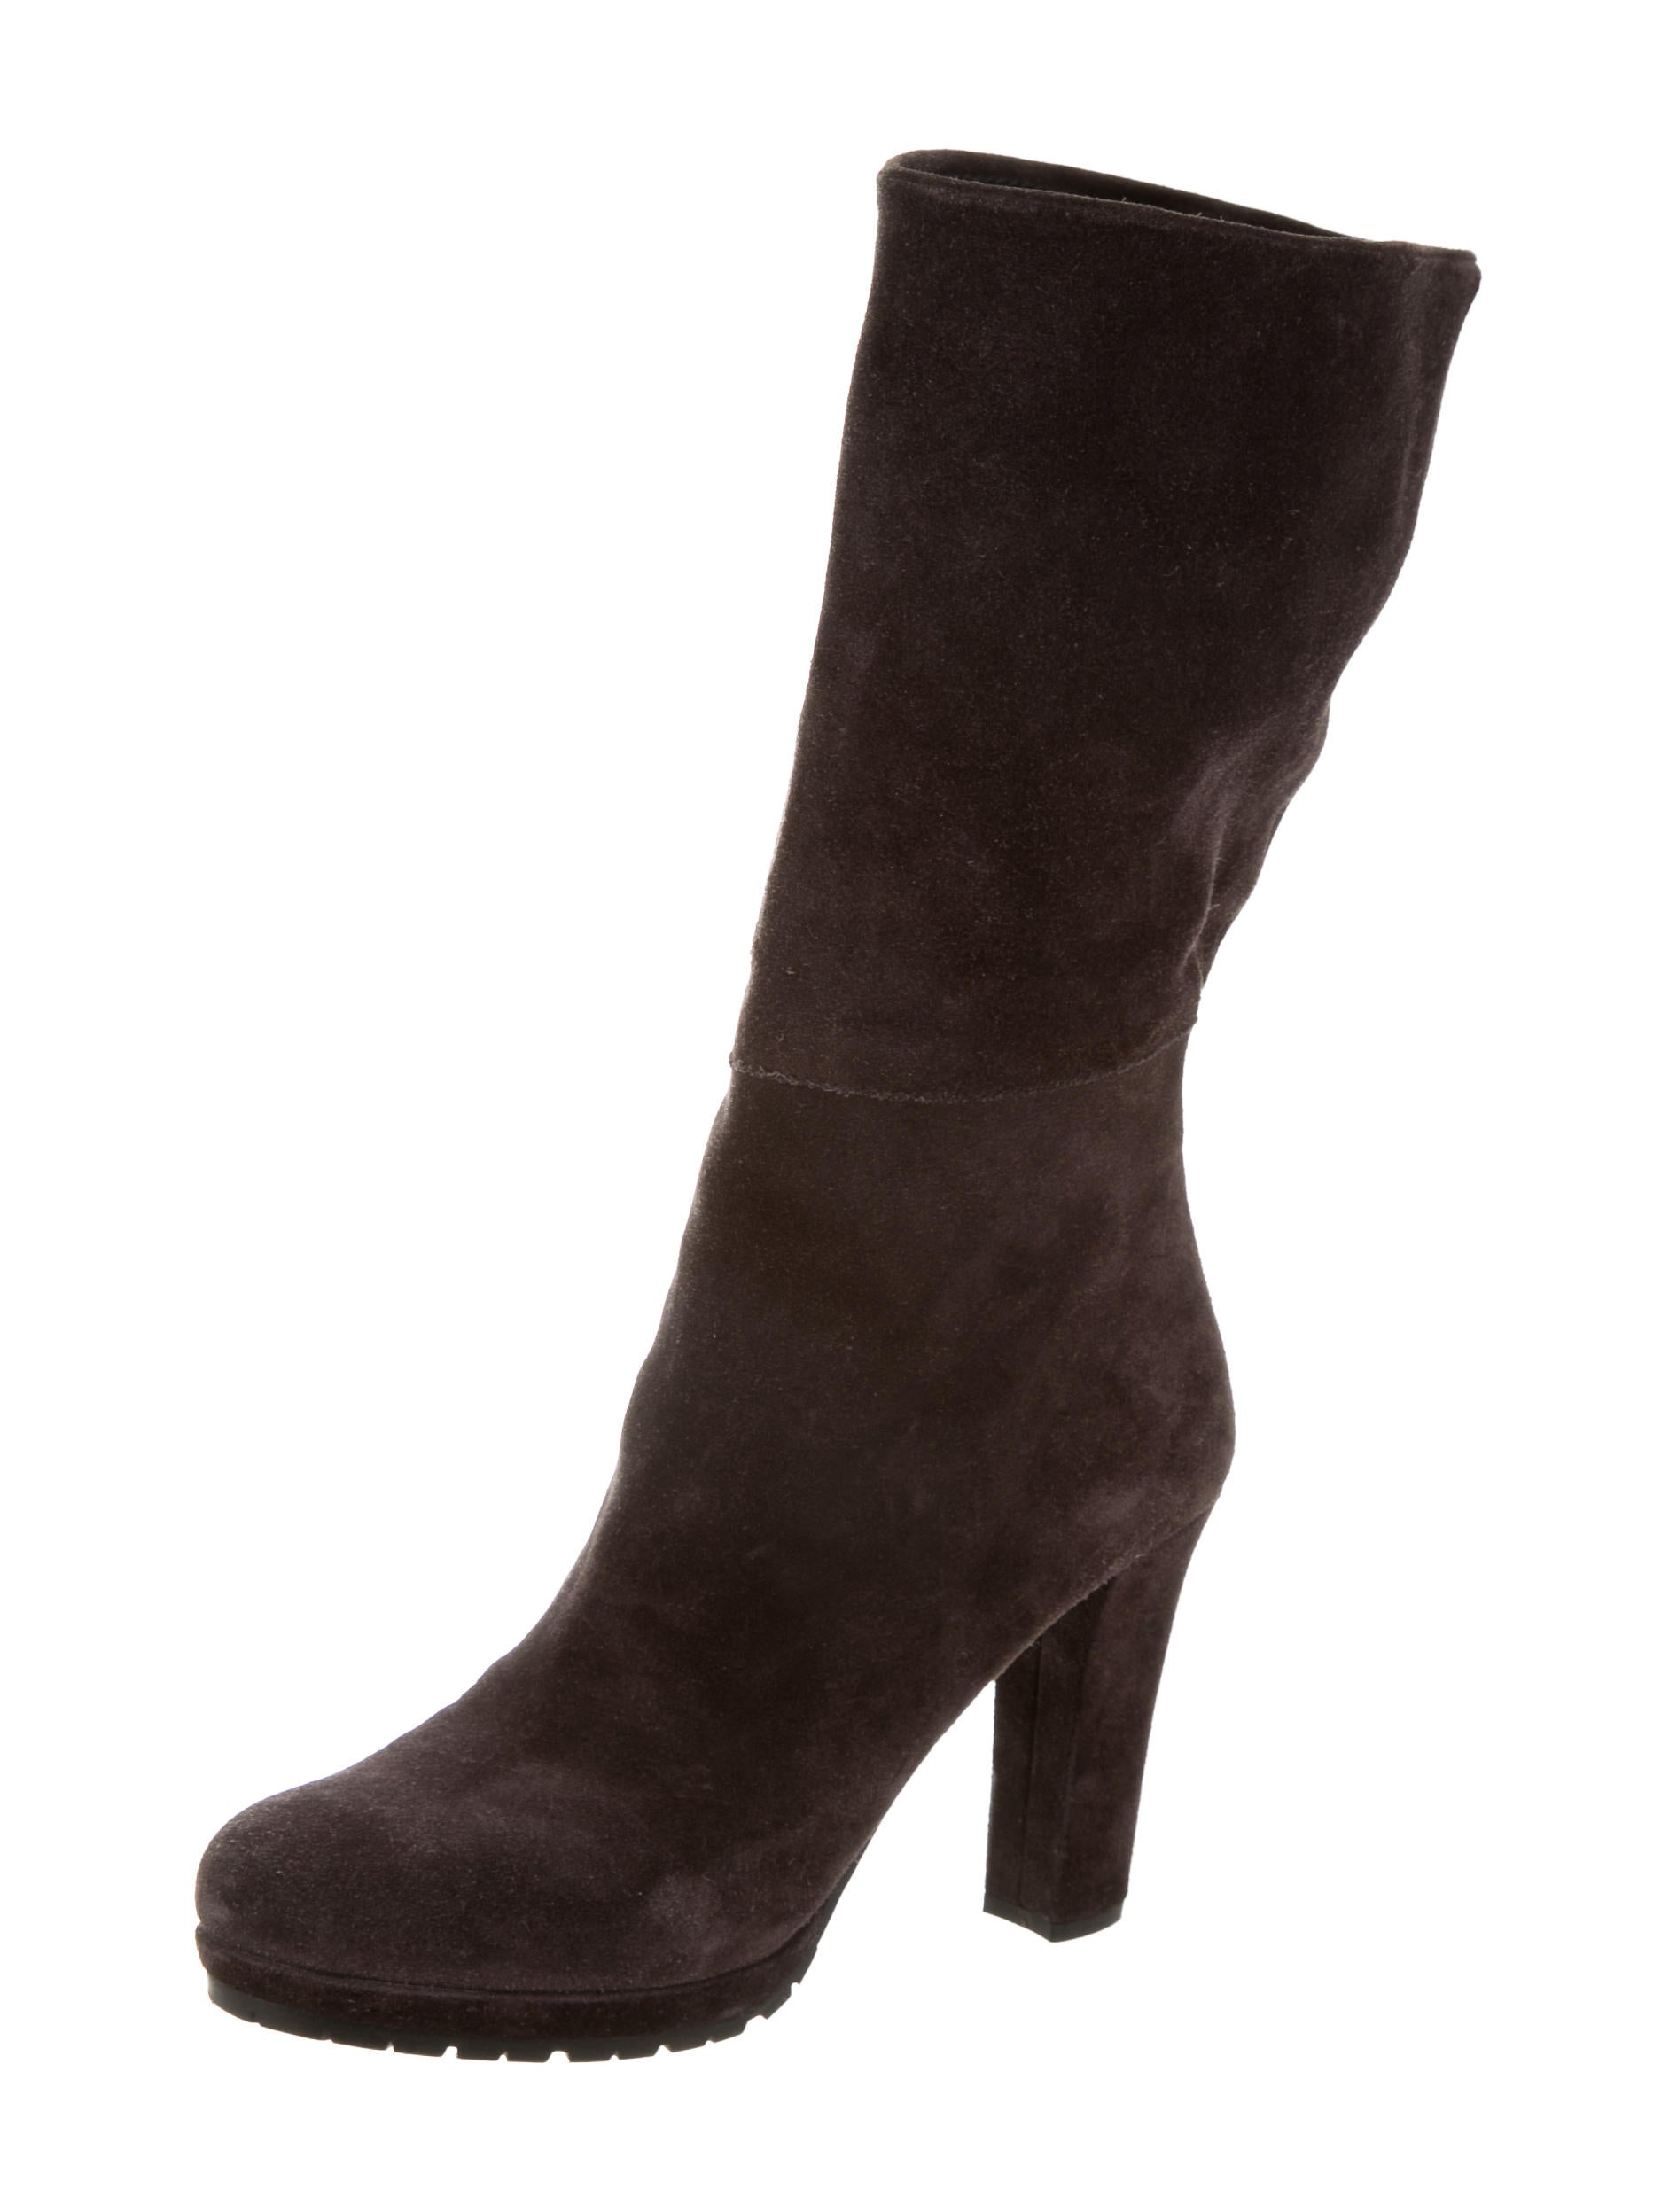 prada suede mid calf boots shoes pra117528 the realreal